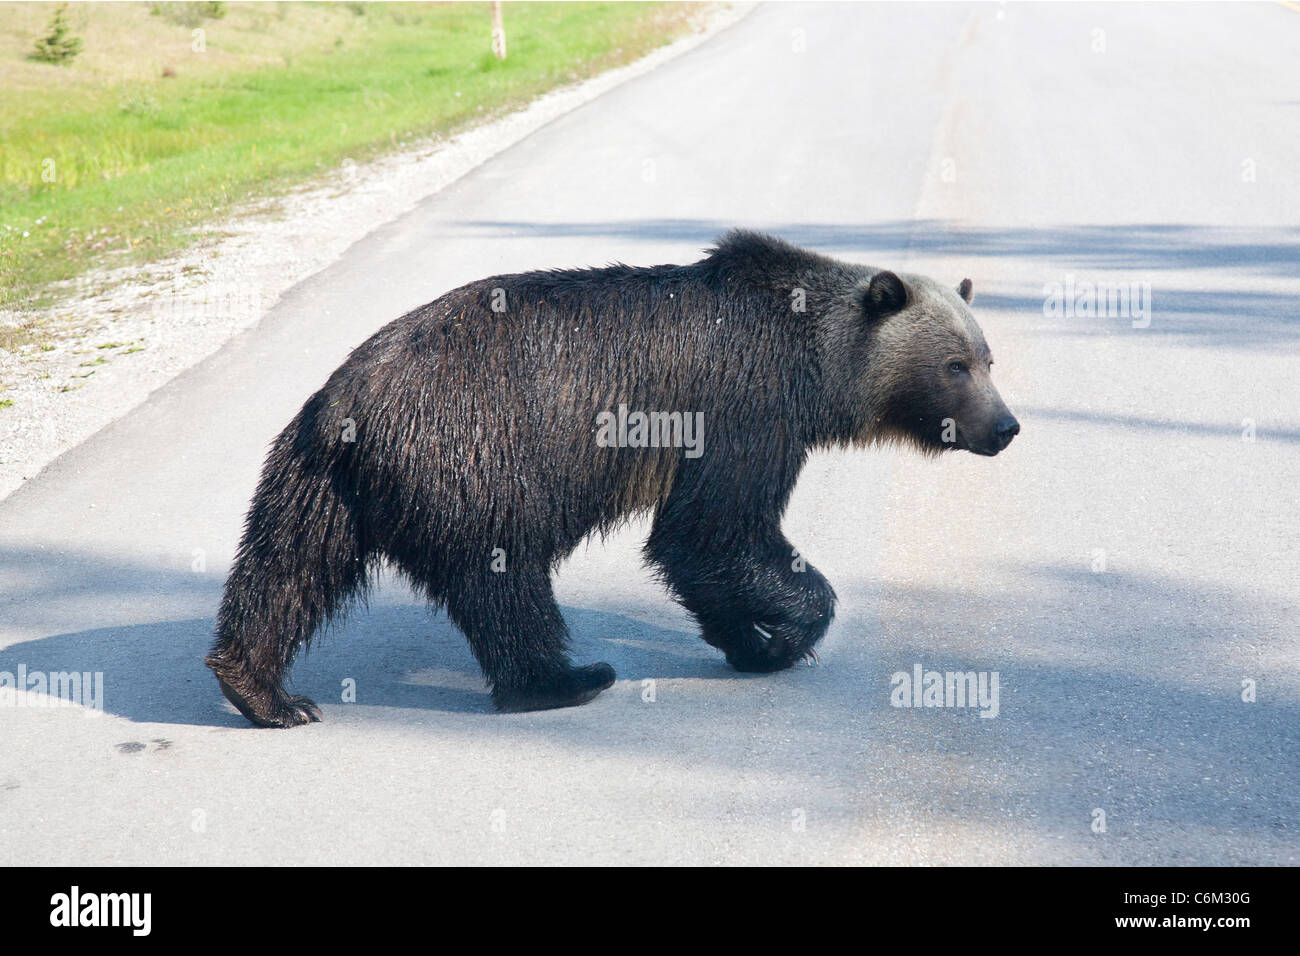 Adult Grizzly Bear, Near Banff, Canada - Stock Image